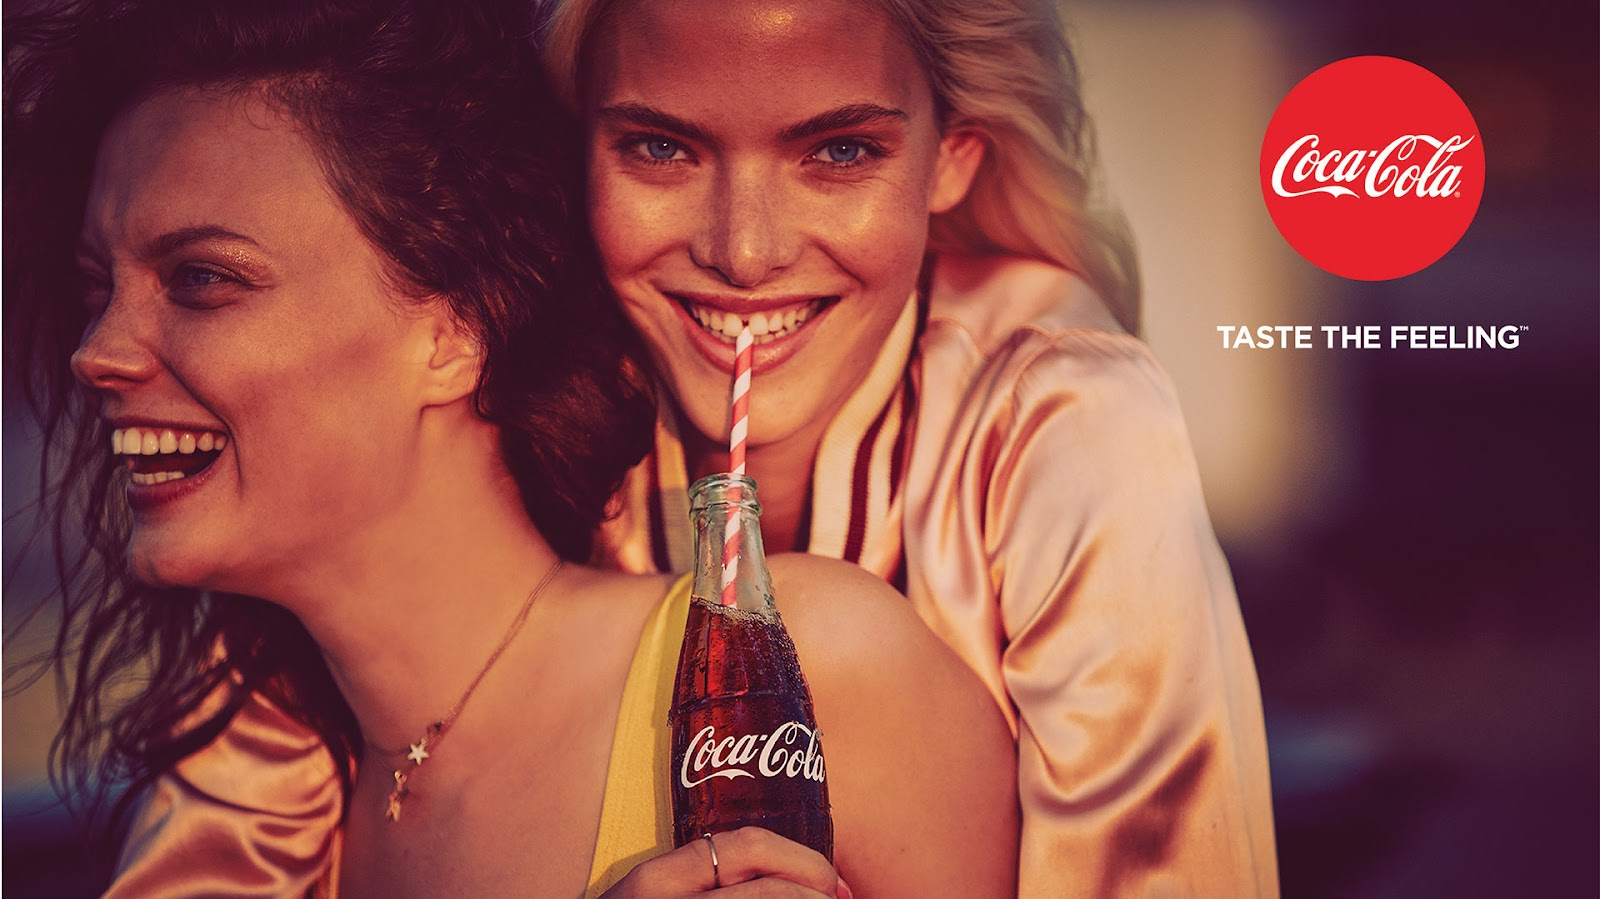 coke-taste-the-feeling-3.jpg